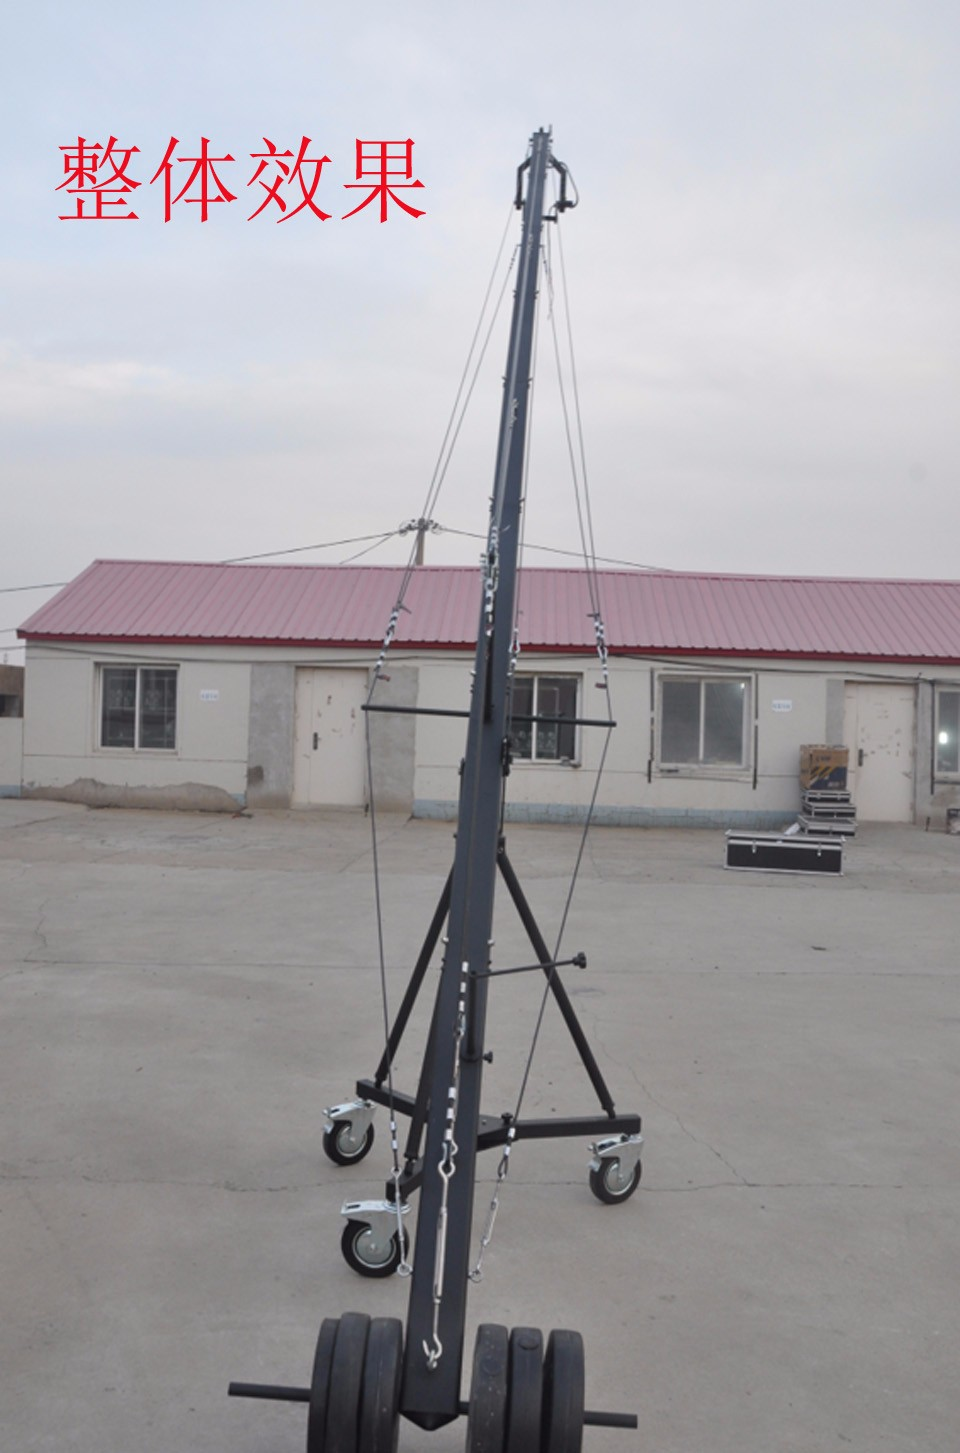 Precautions for the operation and maintenance of the camera crane